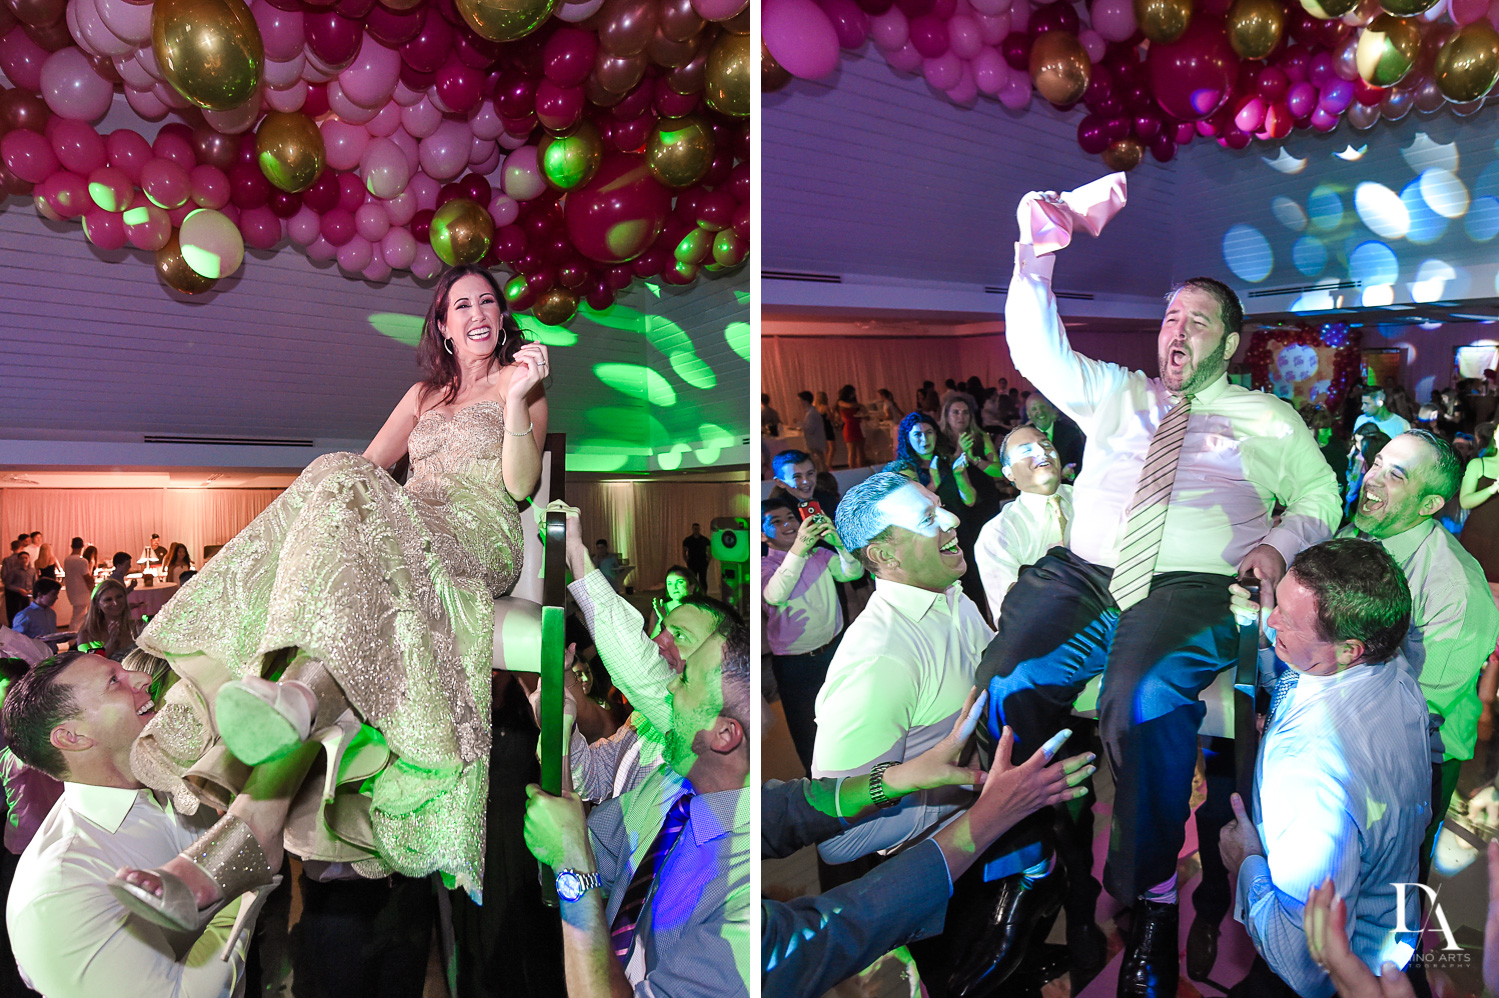 Fun hora pictures at Bar Mitzvah at Saint Andrews Country Club South Florida by Domino Arts Photography